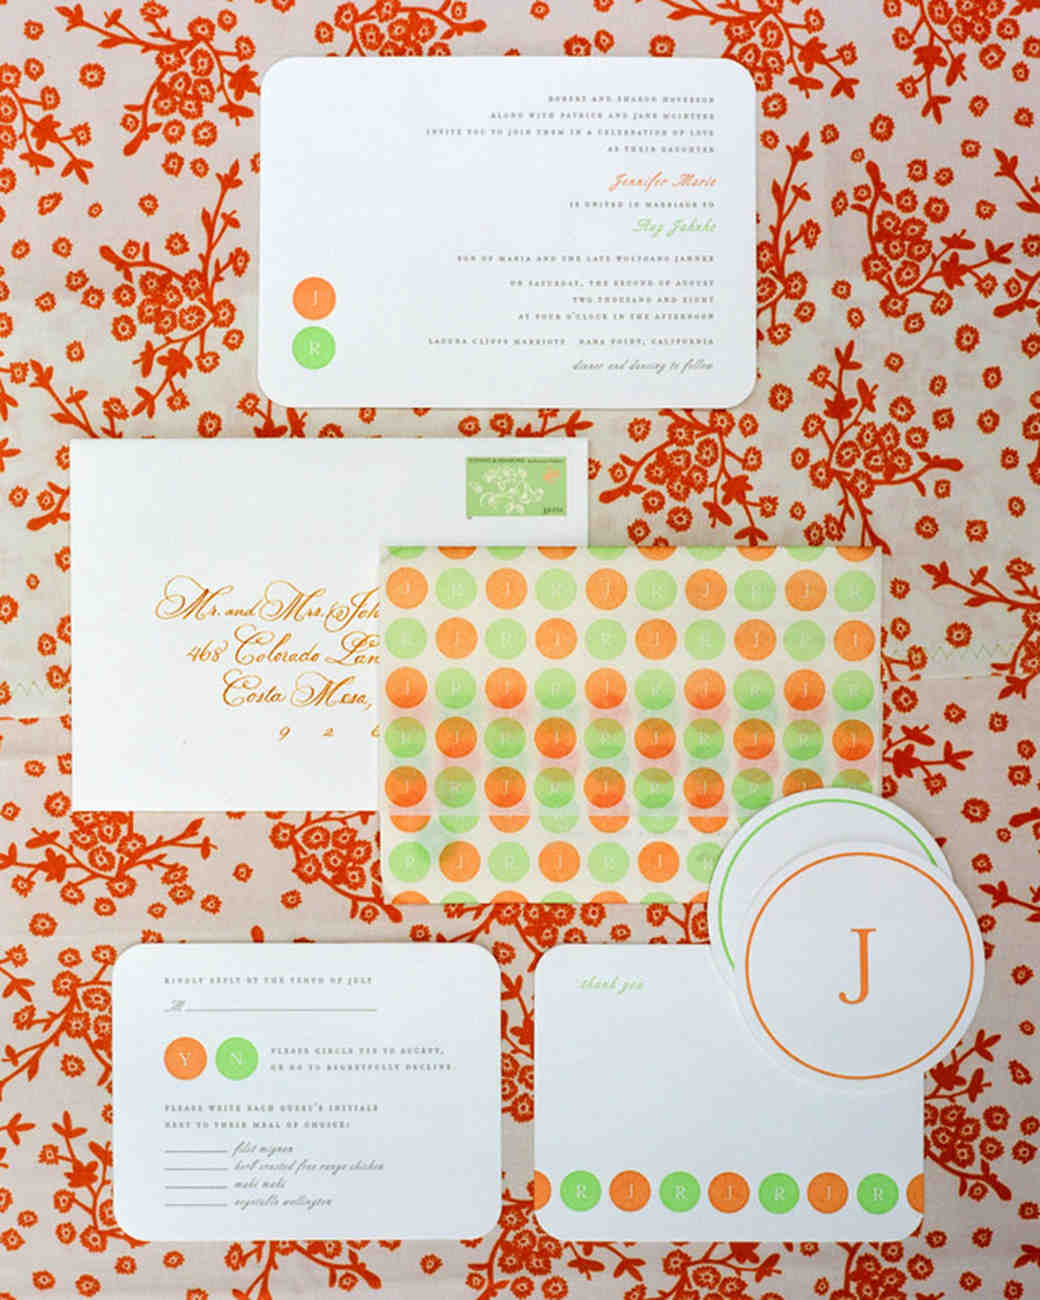 dot wedding invitation